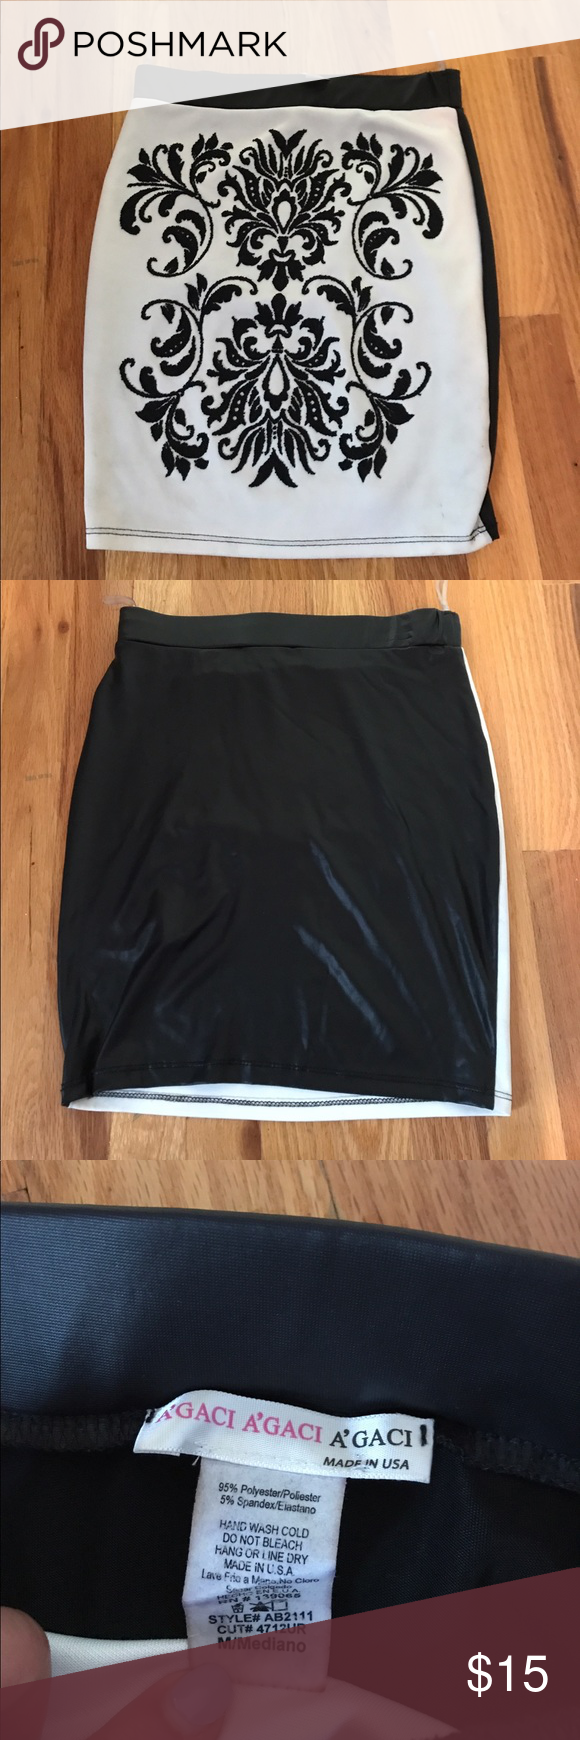 Black and white leather skirt Black and white skirt with design on the front. Th…